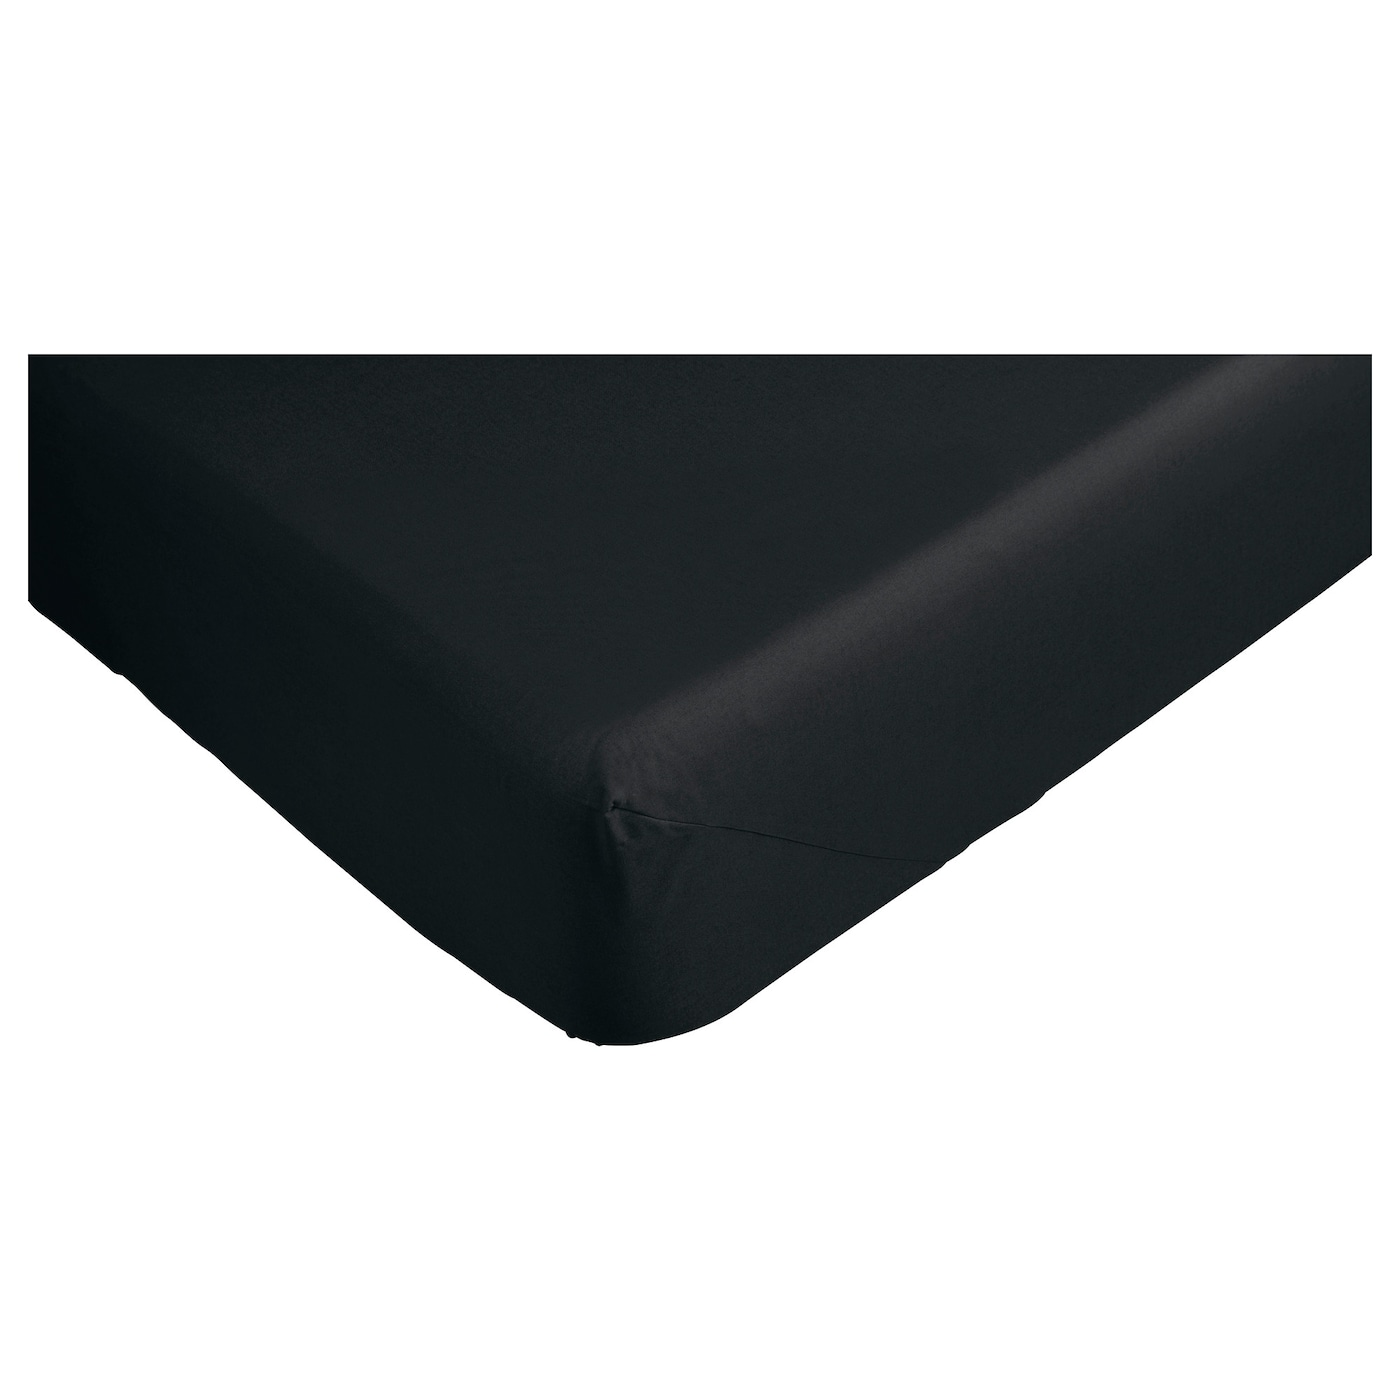 dvala fitted sheet black 90x200 cm ikea. Black Bedroom Furniture Sets. Home Design Ideas